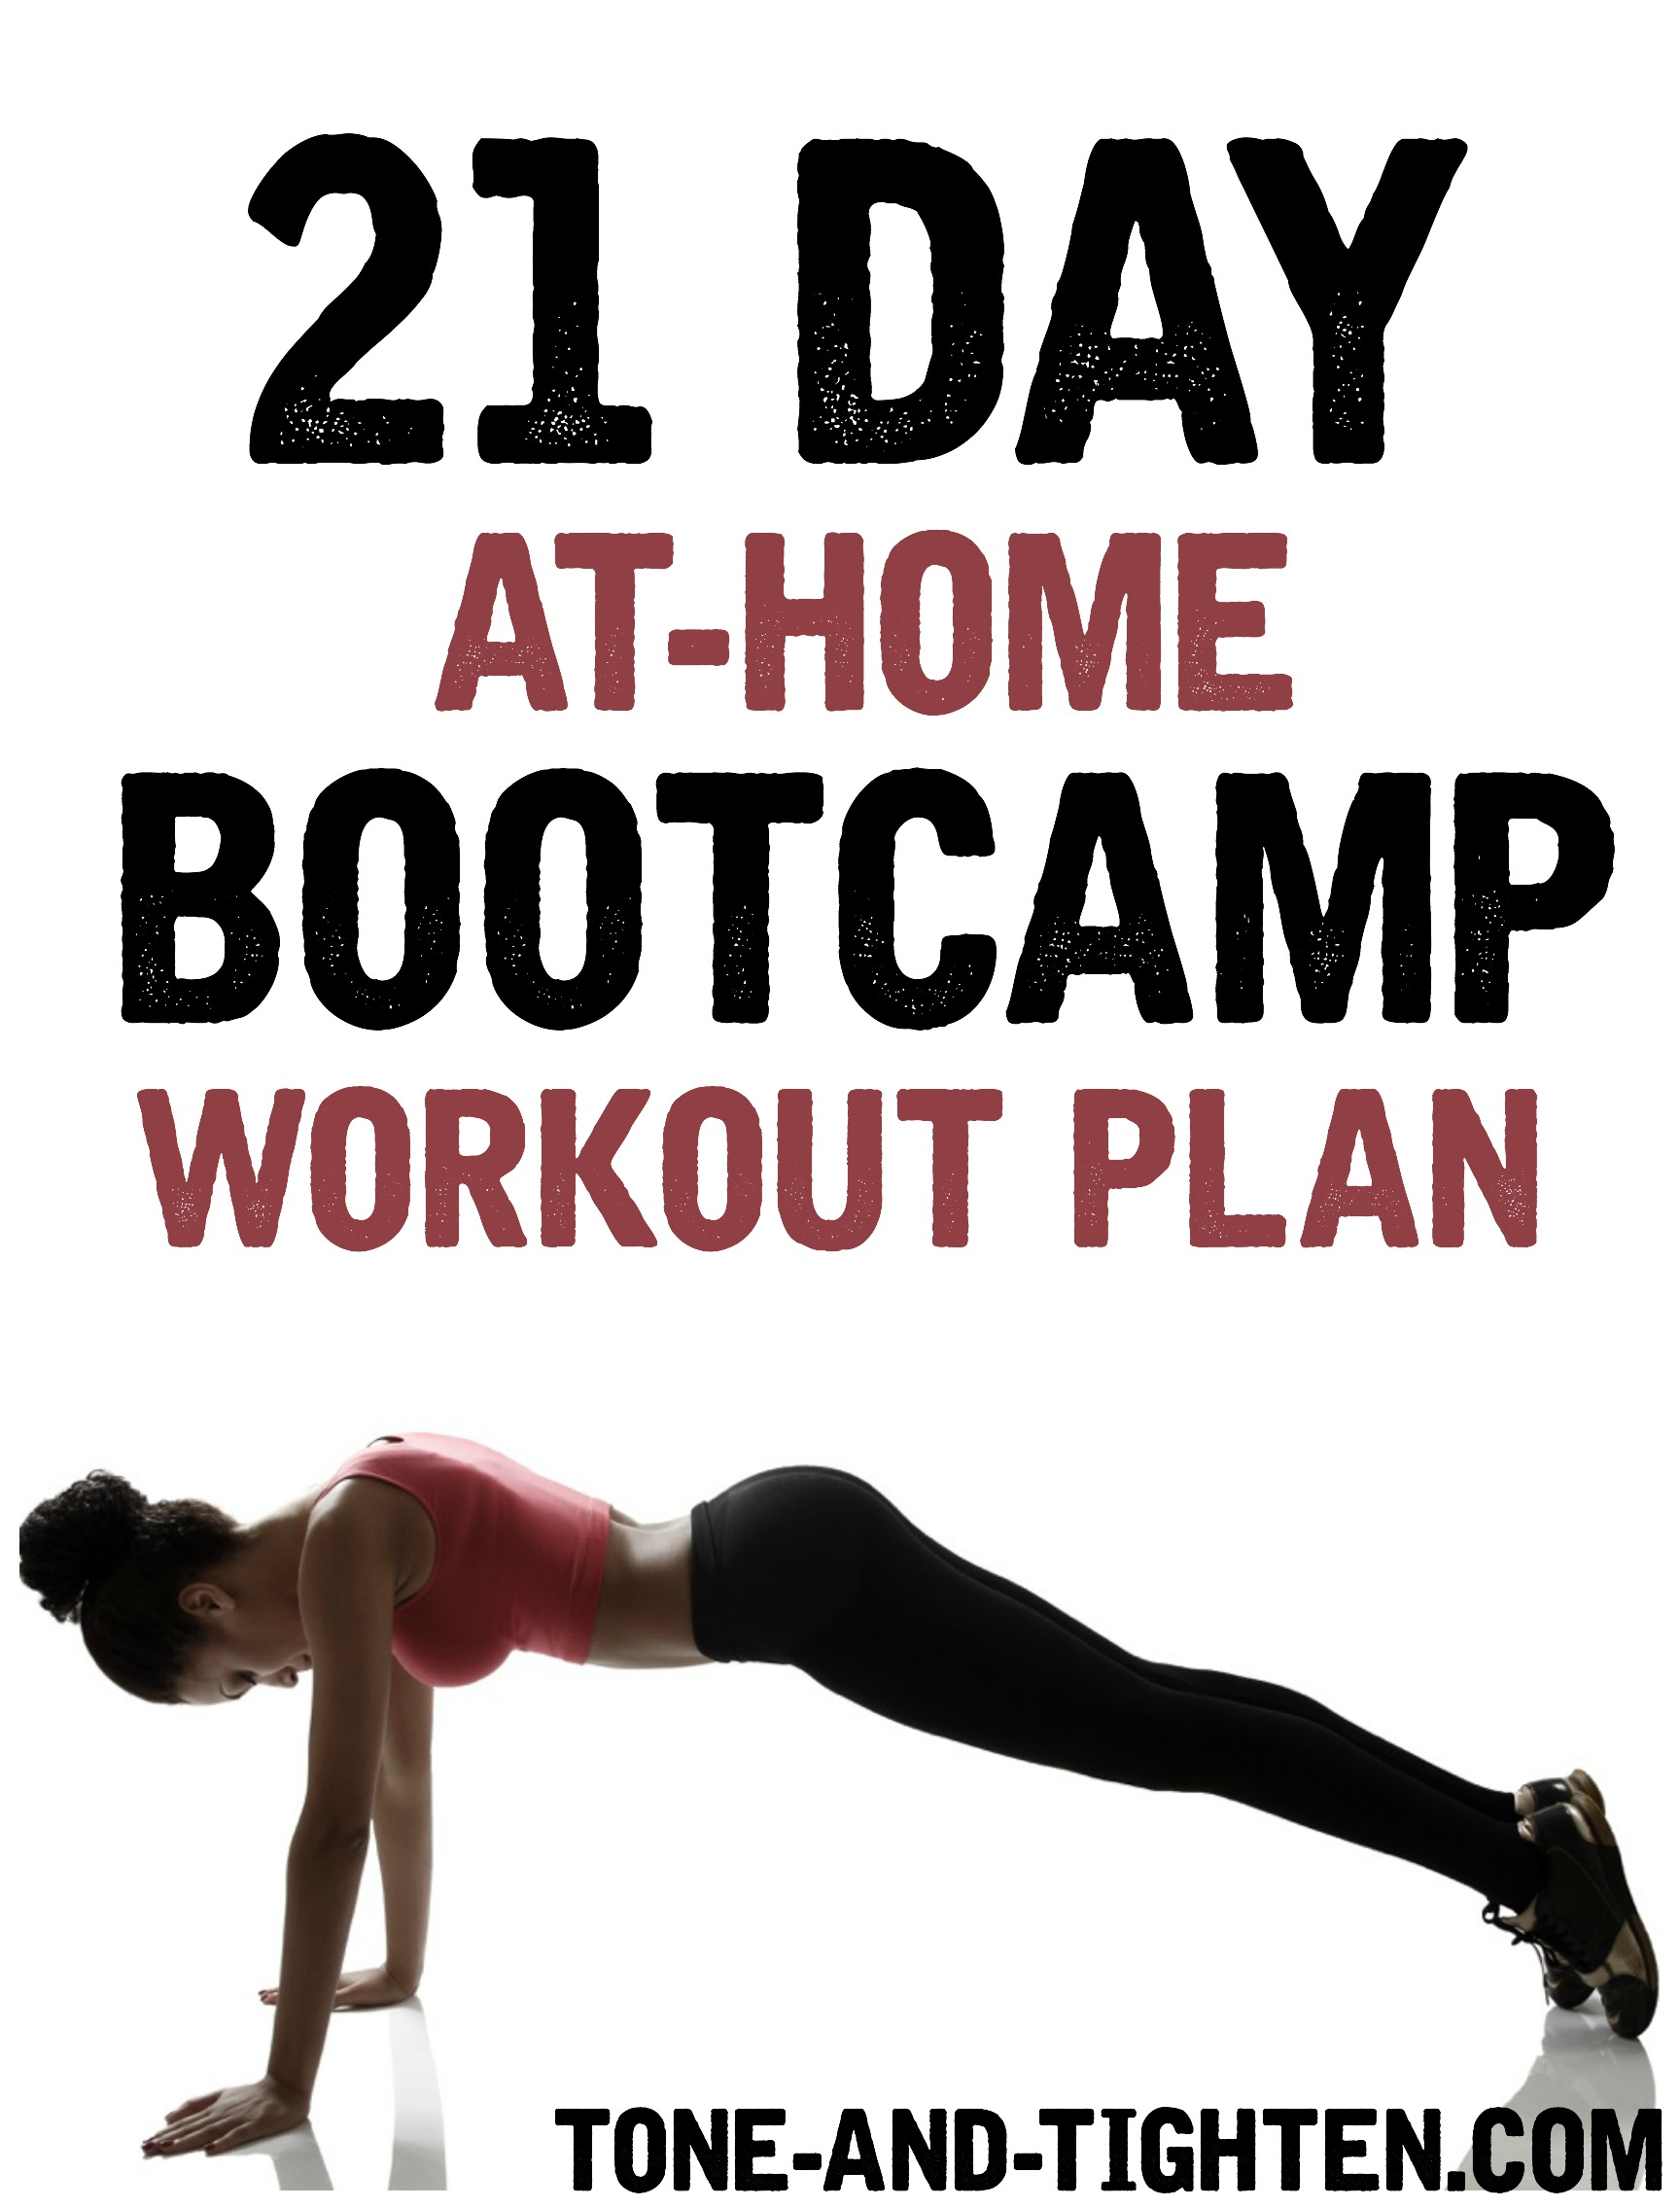 21 Day At Home Bootcamp Workout Plan Tone And Tighten